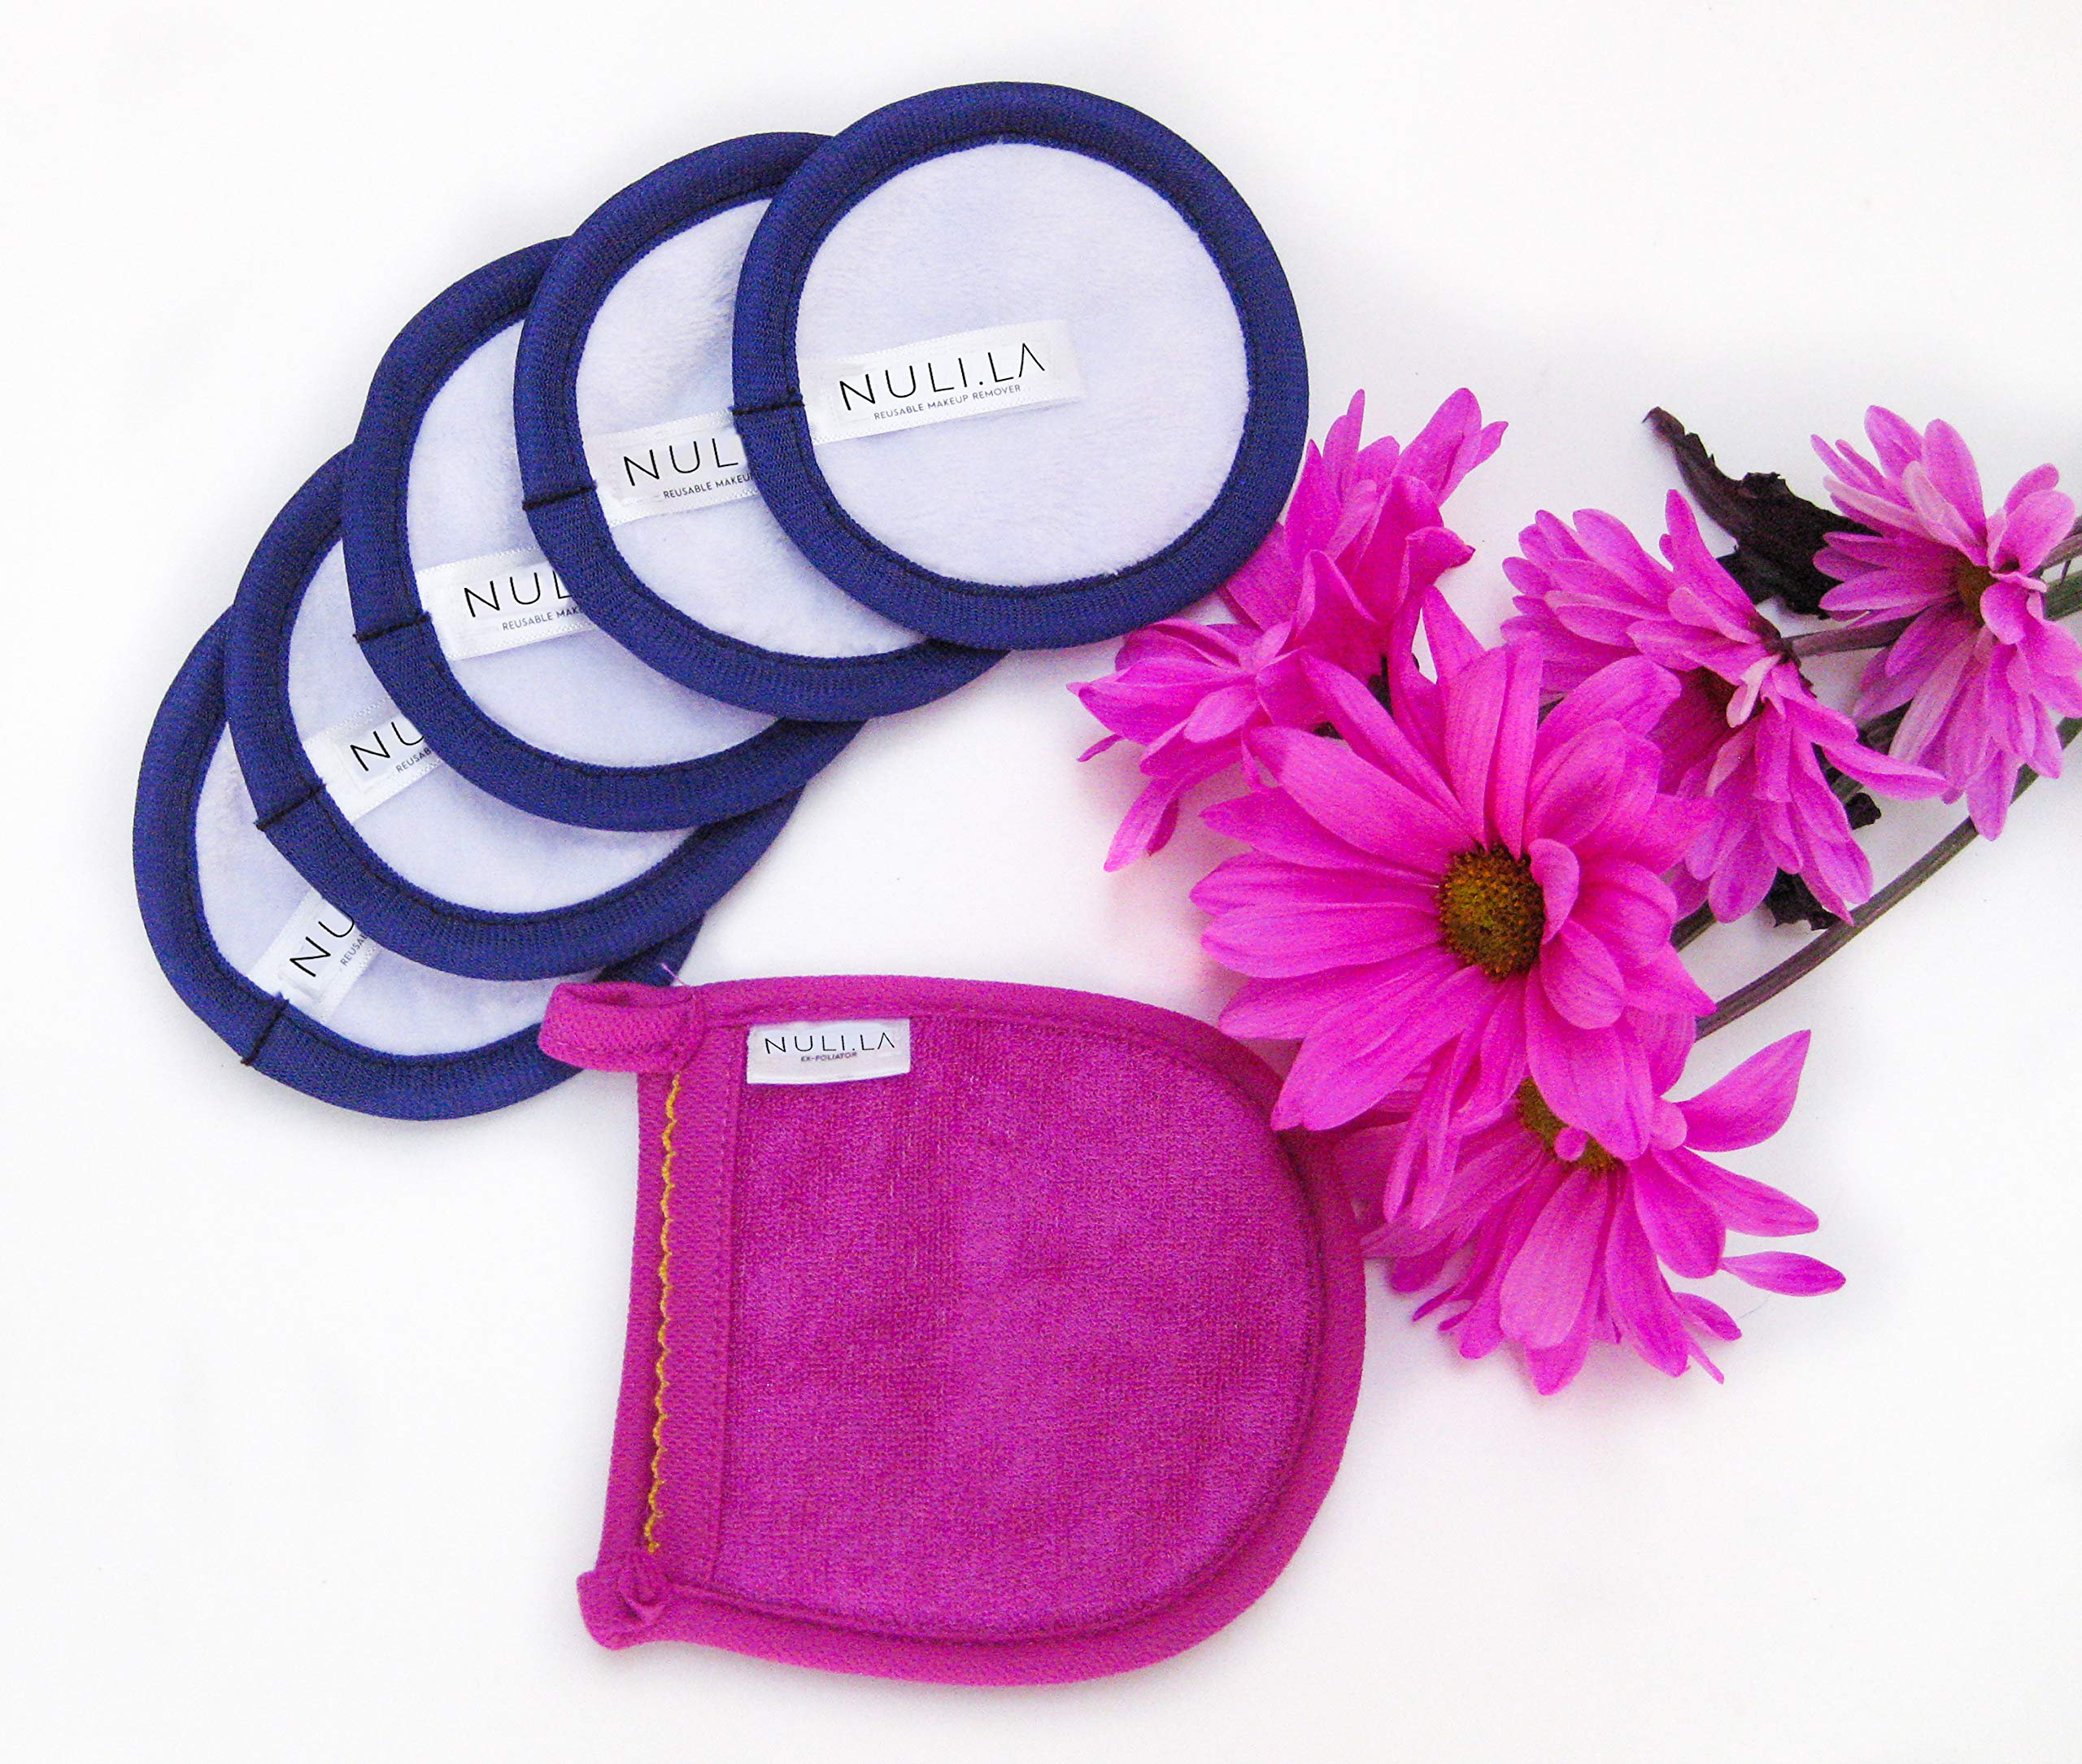 Just Add Water! Reusable Makeup Remover Cloth Pads 5 Pack + 1 Bamboo Exfoliator Mitten, Premium Microfiber Pads Machine Washable up to 1000 Times by NULI LA